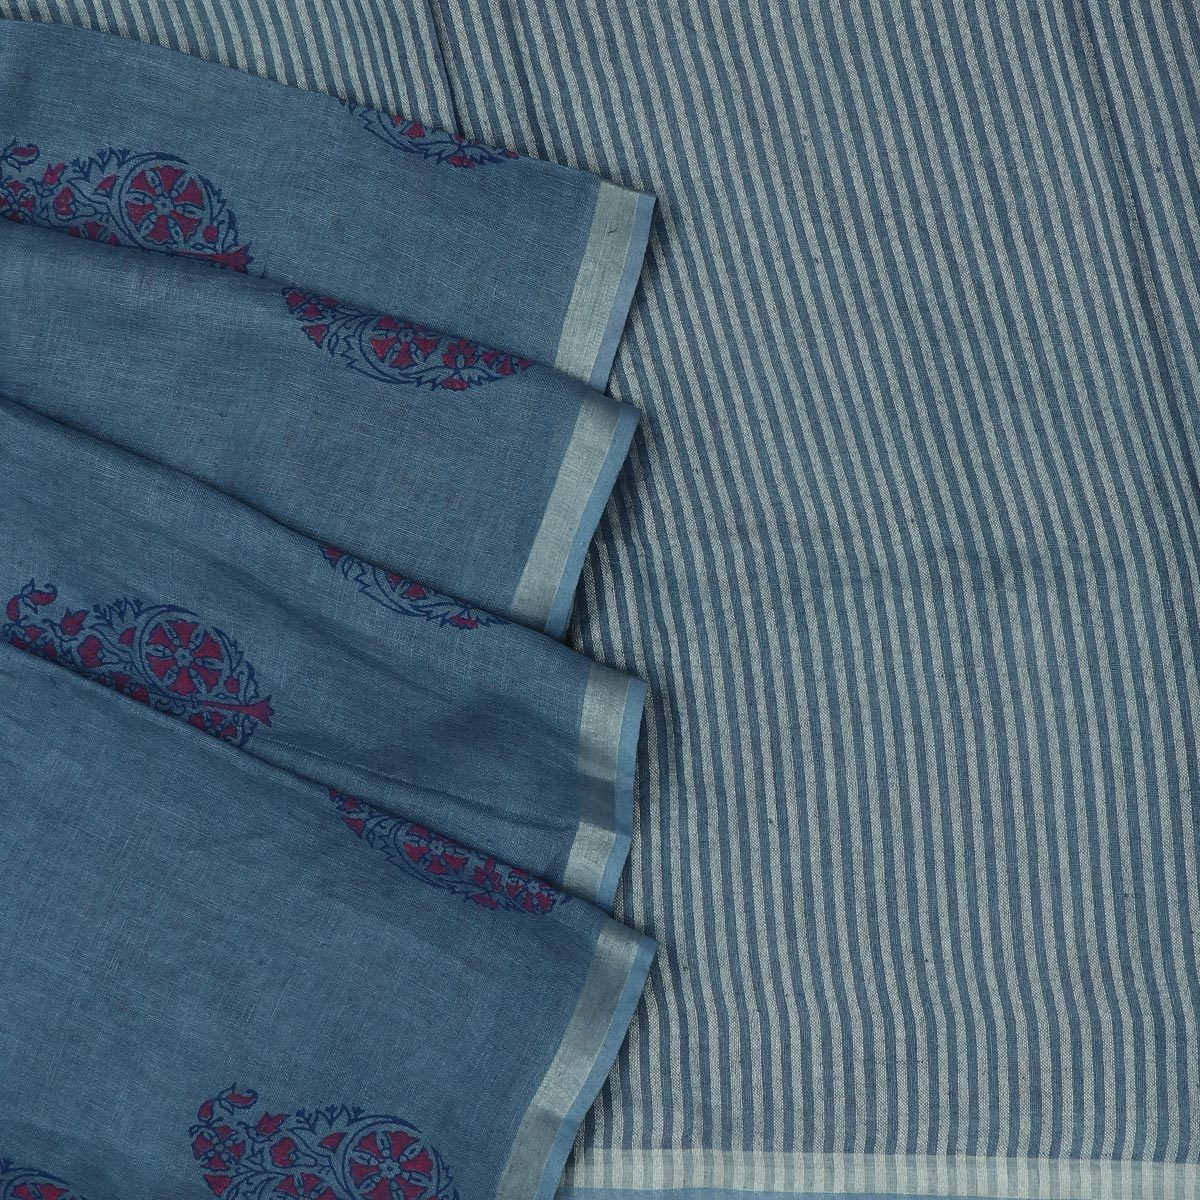 Handblock printed Linen Saree Bluish Grey and Pink with Flower design and simple border